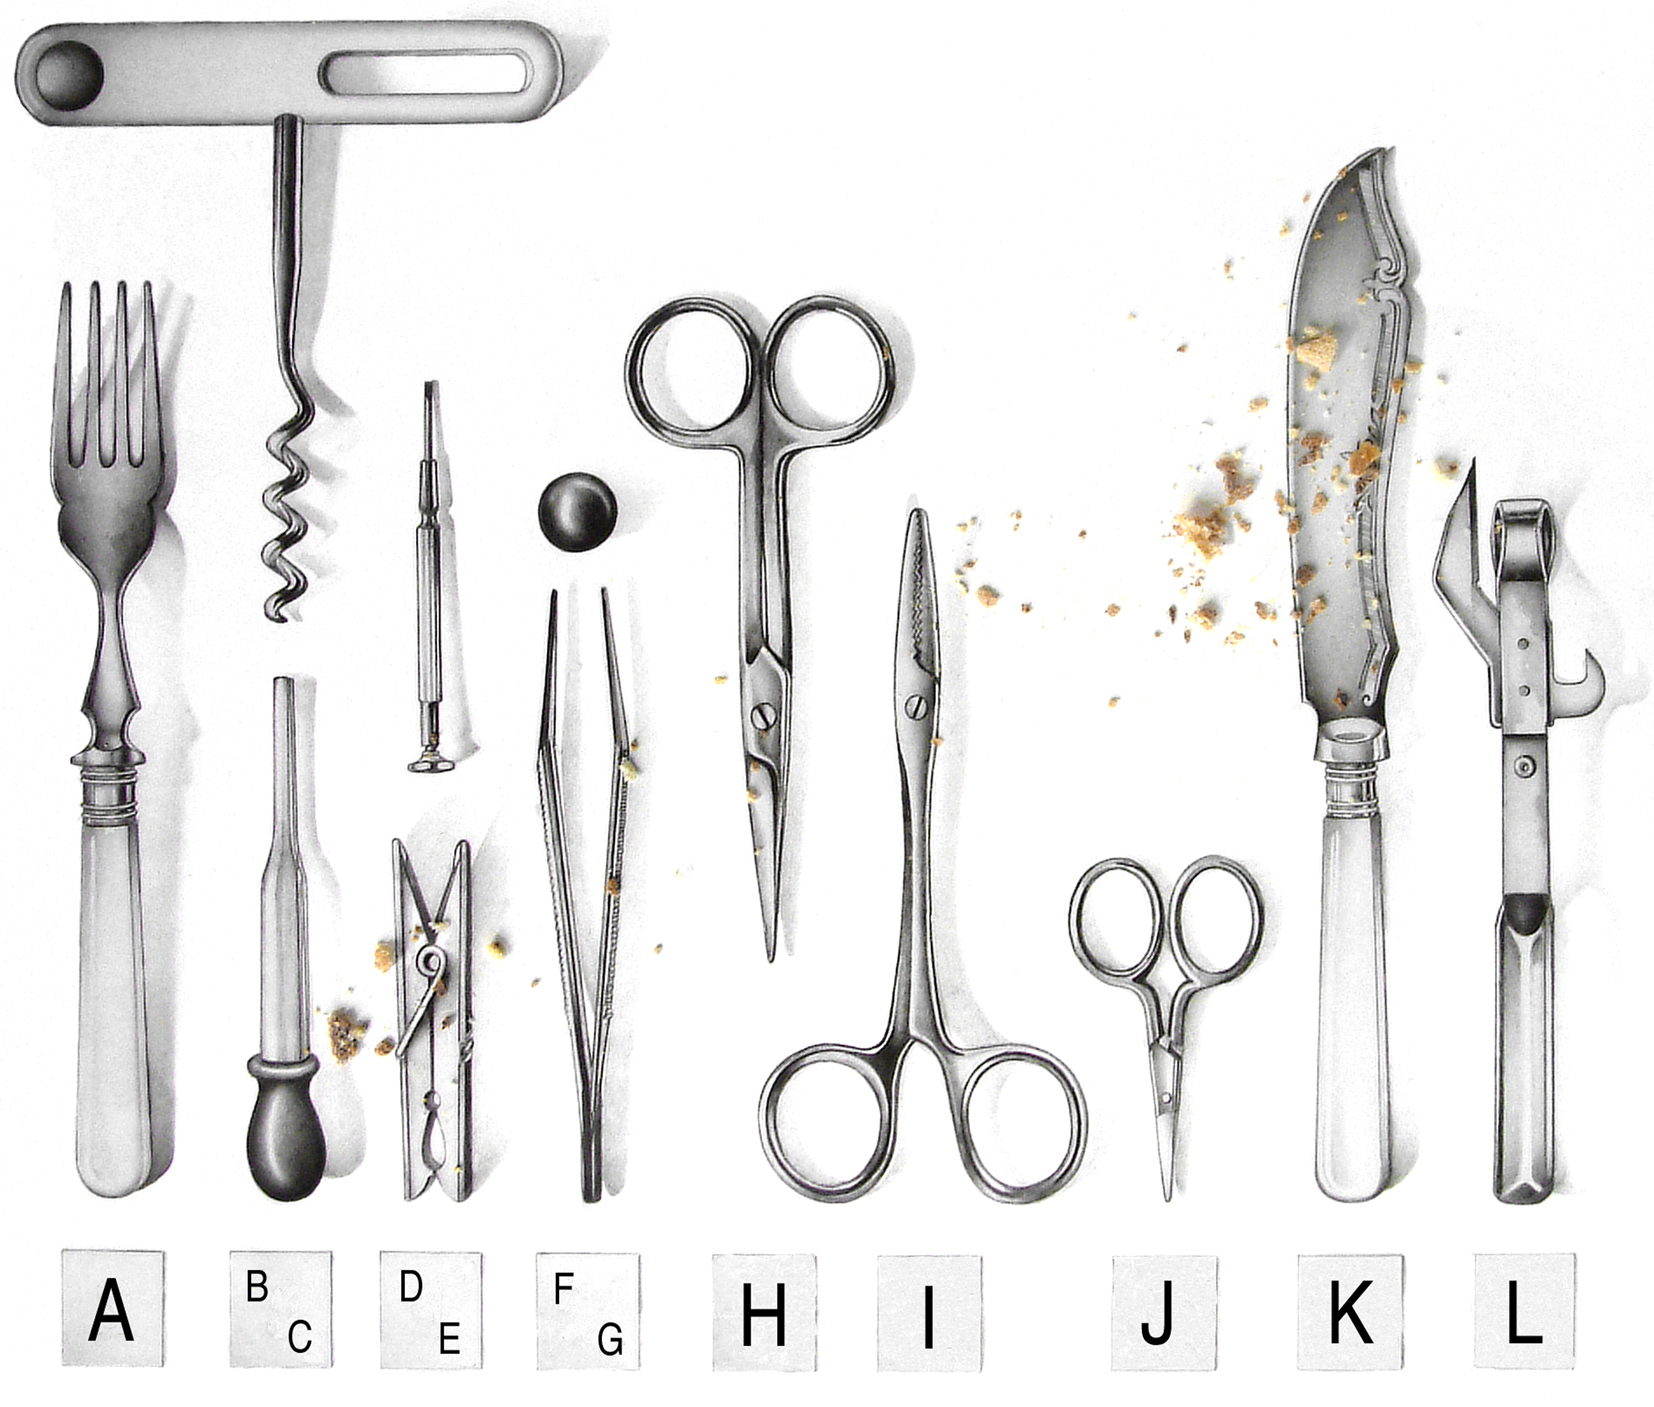 Utensils And Implements